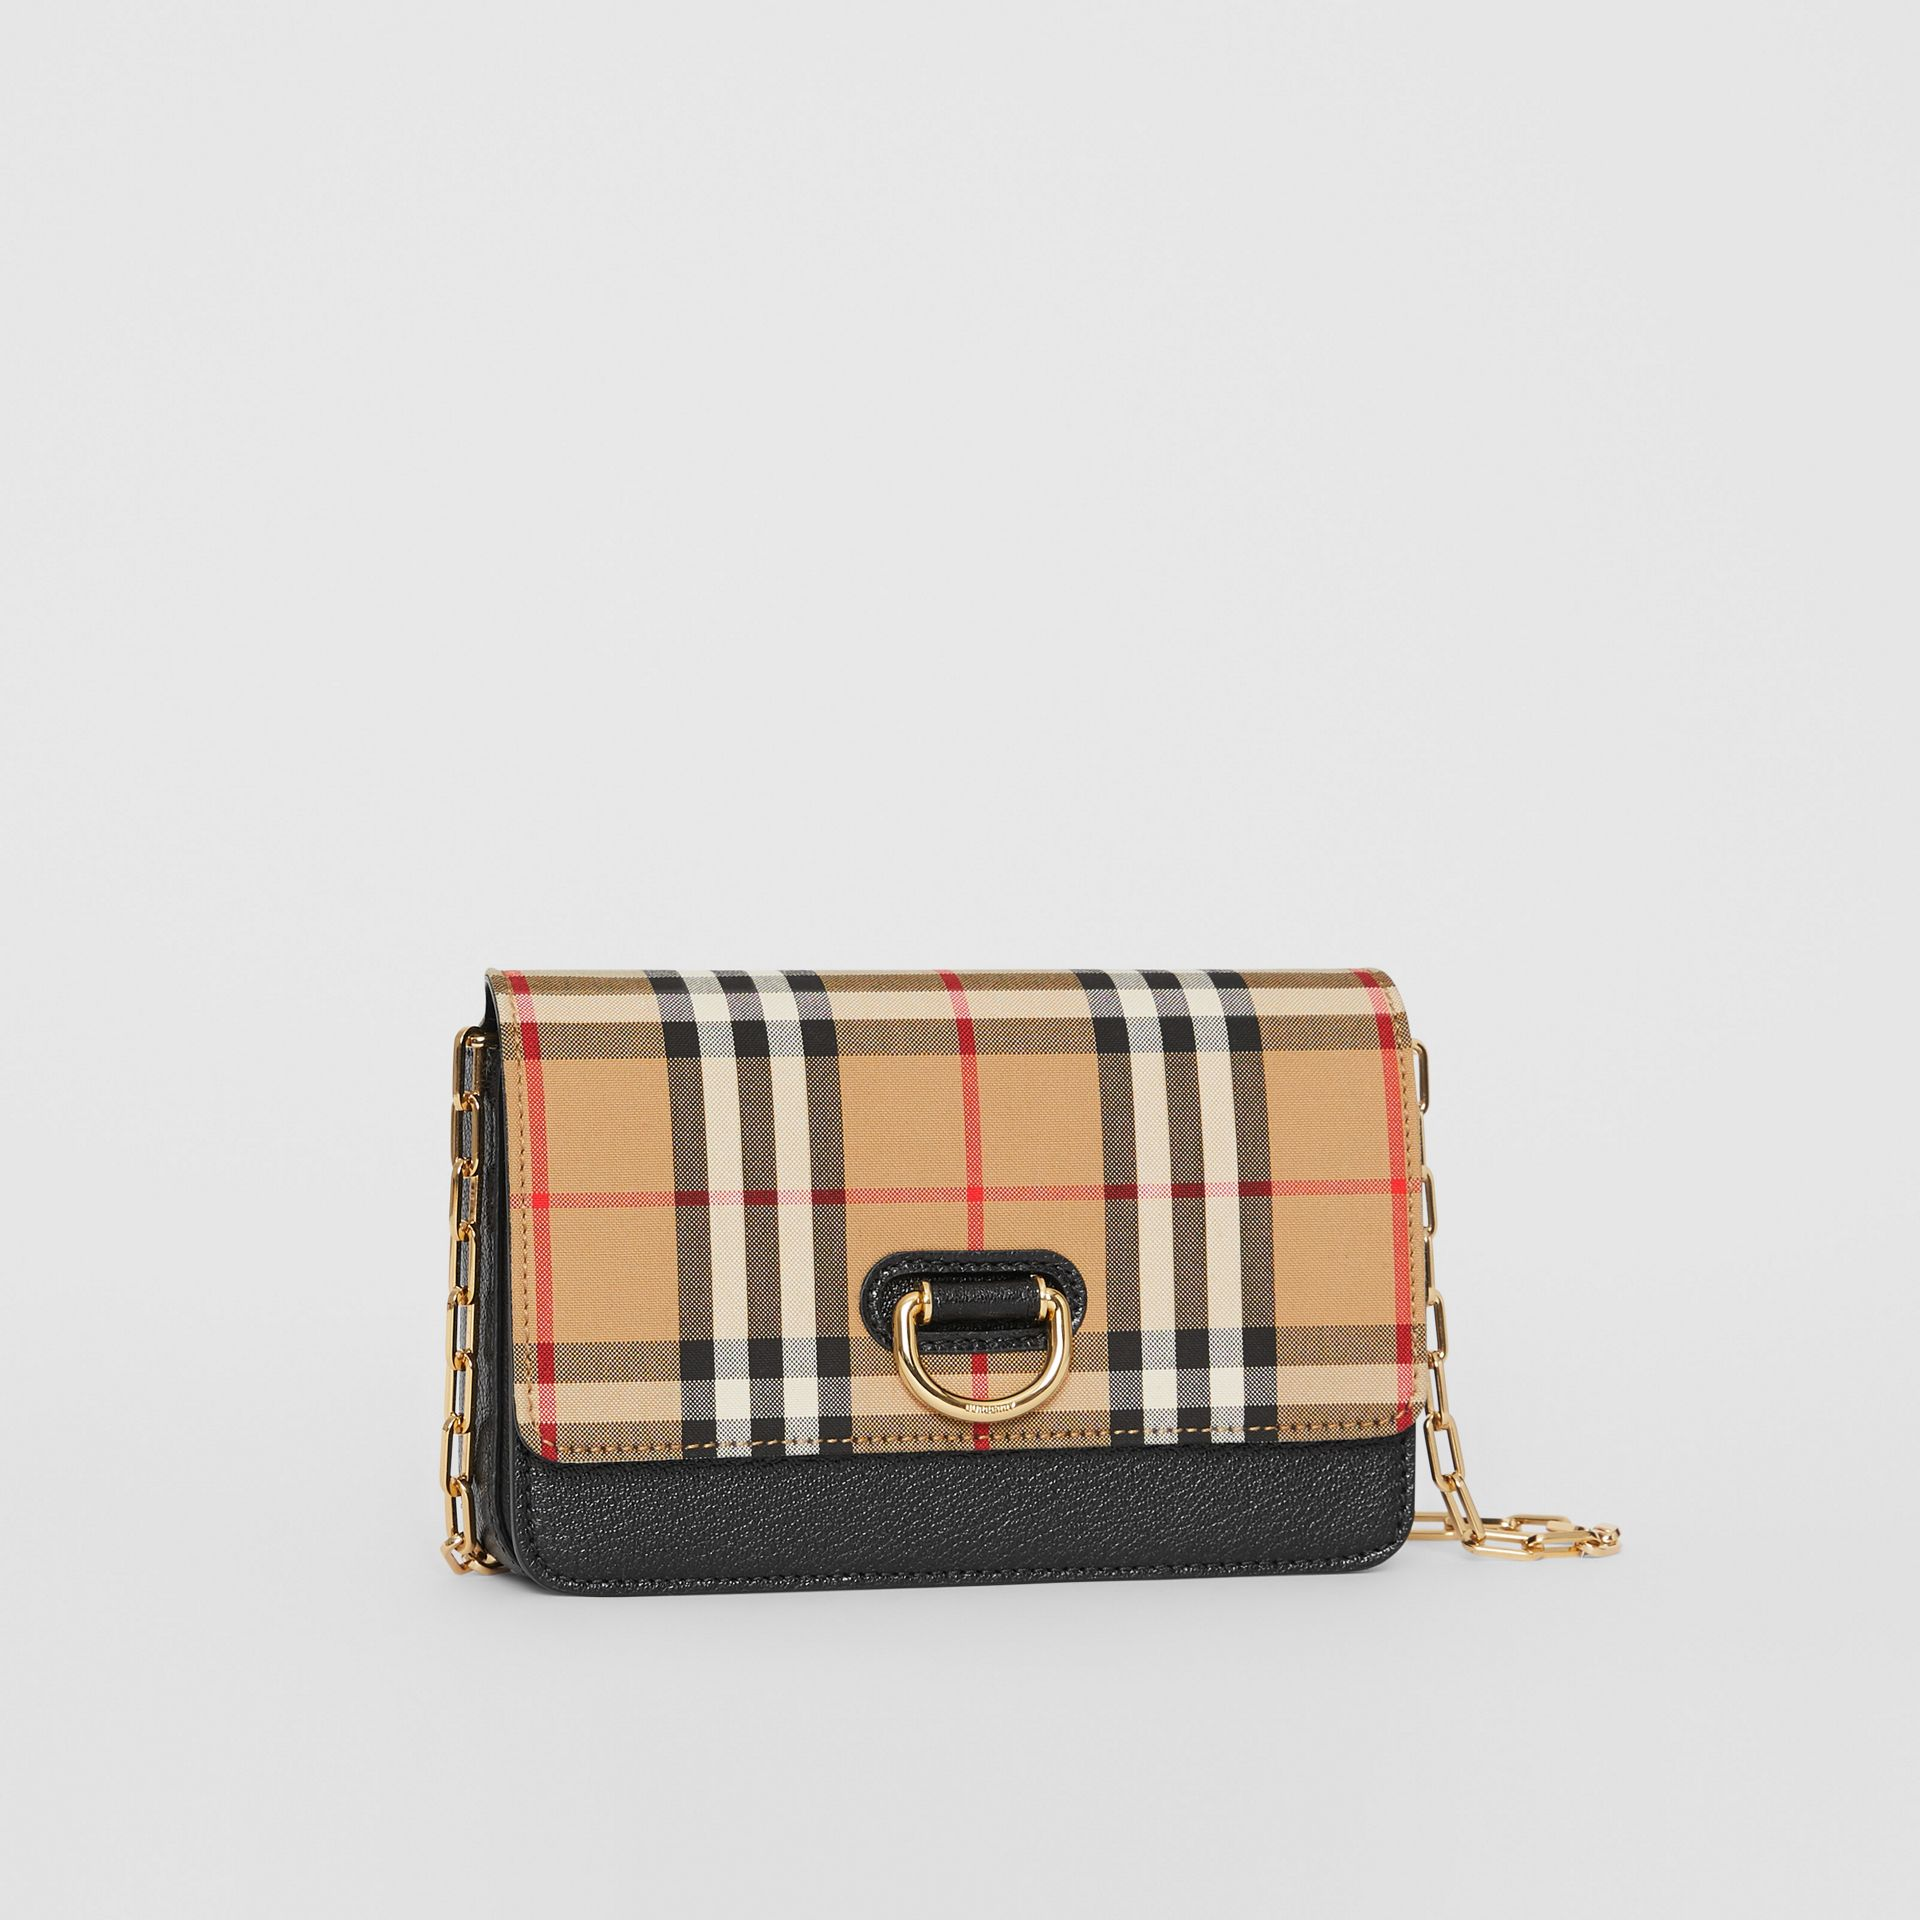 Mini sac The D-ring en cuir et Vintage check (Noir) - Femme | Burberry - photo de la galerie 6